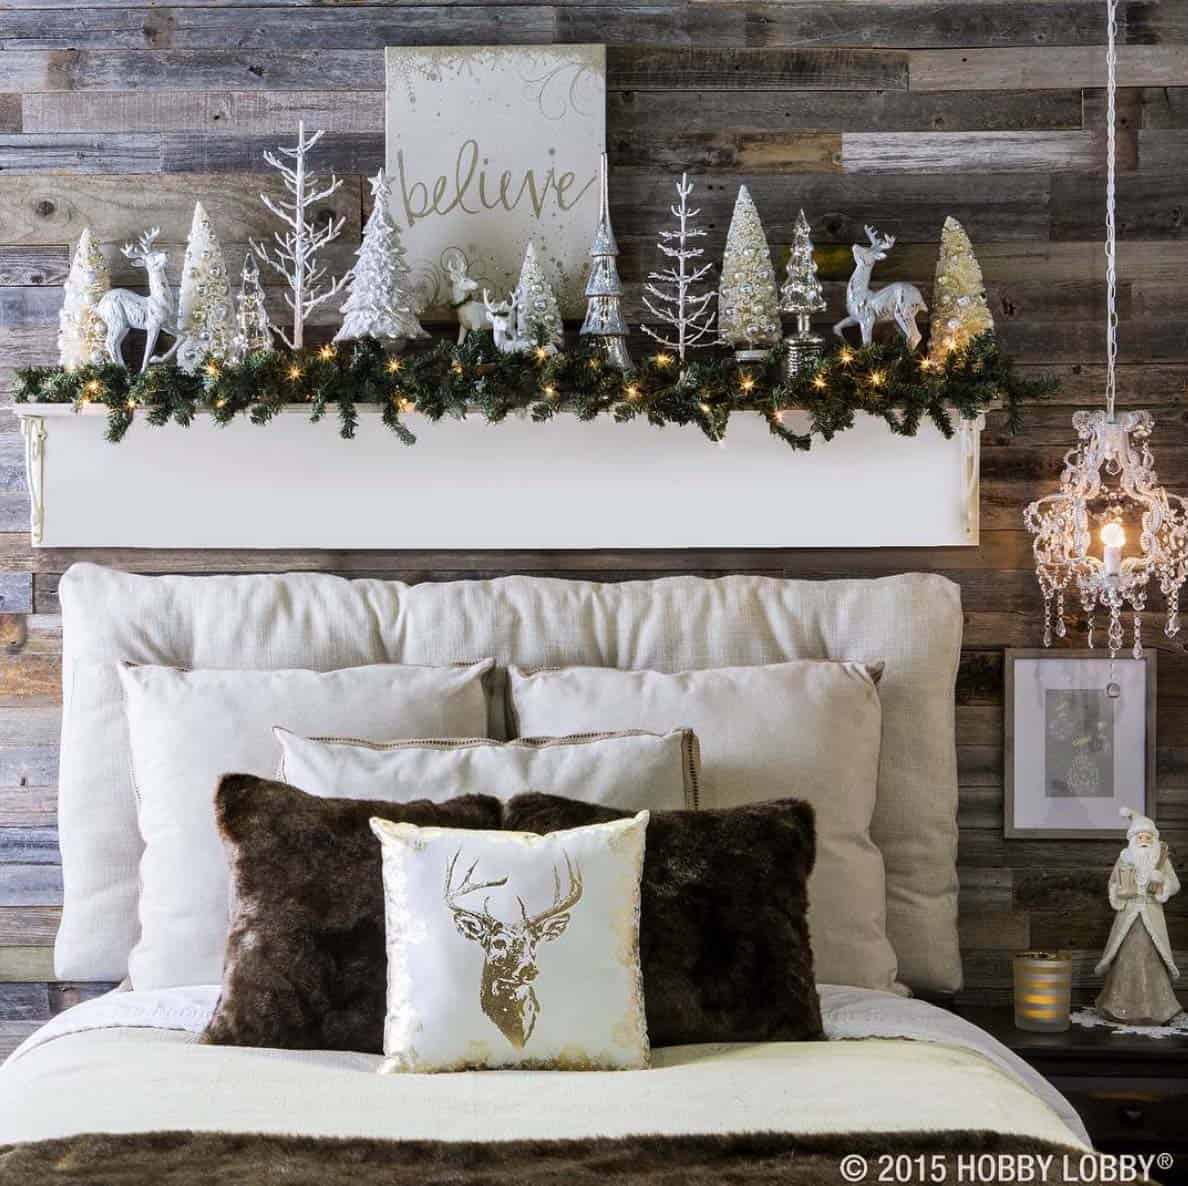 Christmas Bedroom Decorating Ideas-26-1 Kindesign